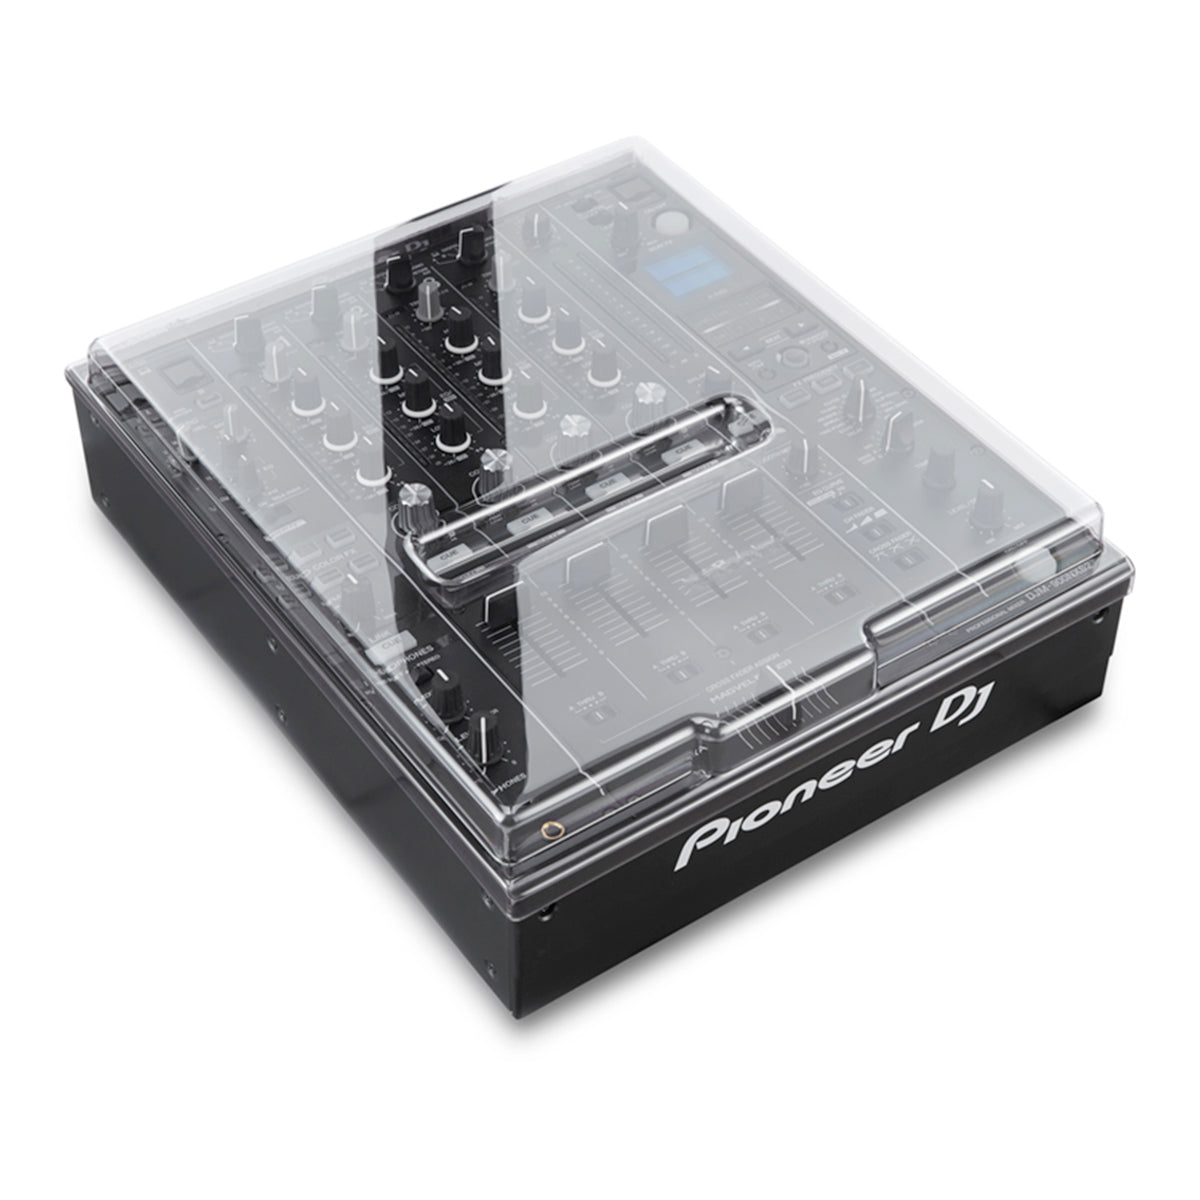 Decksaver: Polycarbonate Dust Cover For Pioneer DJM-900 NXS2 (DS-PC-DJM900NXS2)